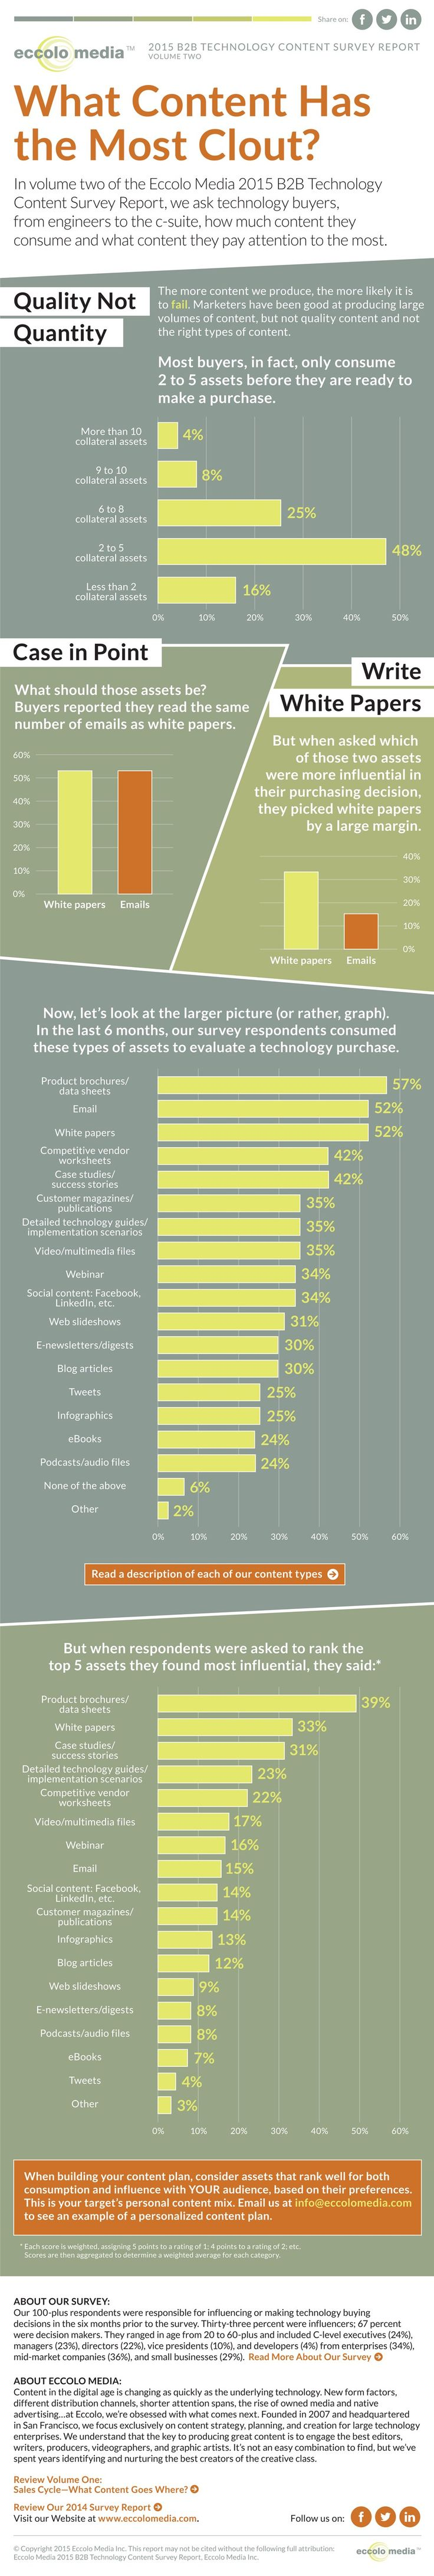 Content  Content Types Valued Most By B2b Tech Buyers [infographic] :  Marketingprofs Article